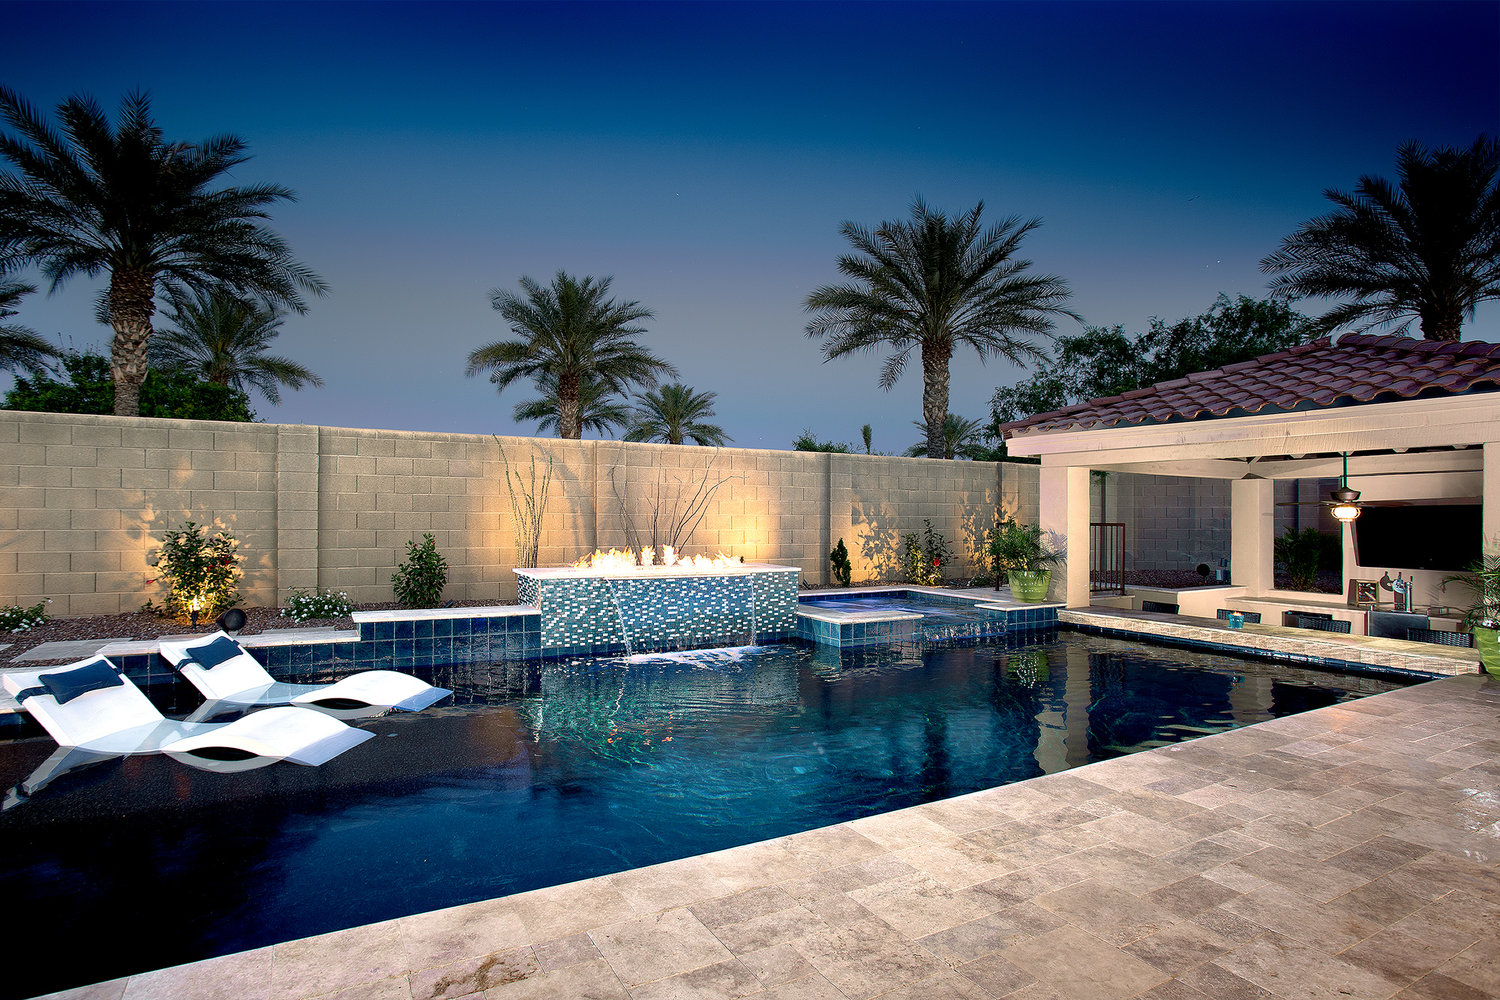 Presidential Pools, Spas & Patio of Arizona: Phoenix Valley ...